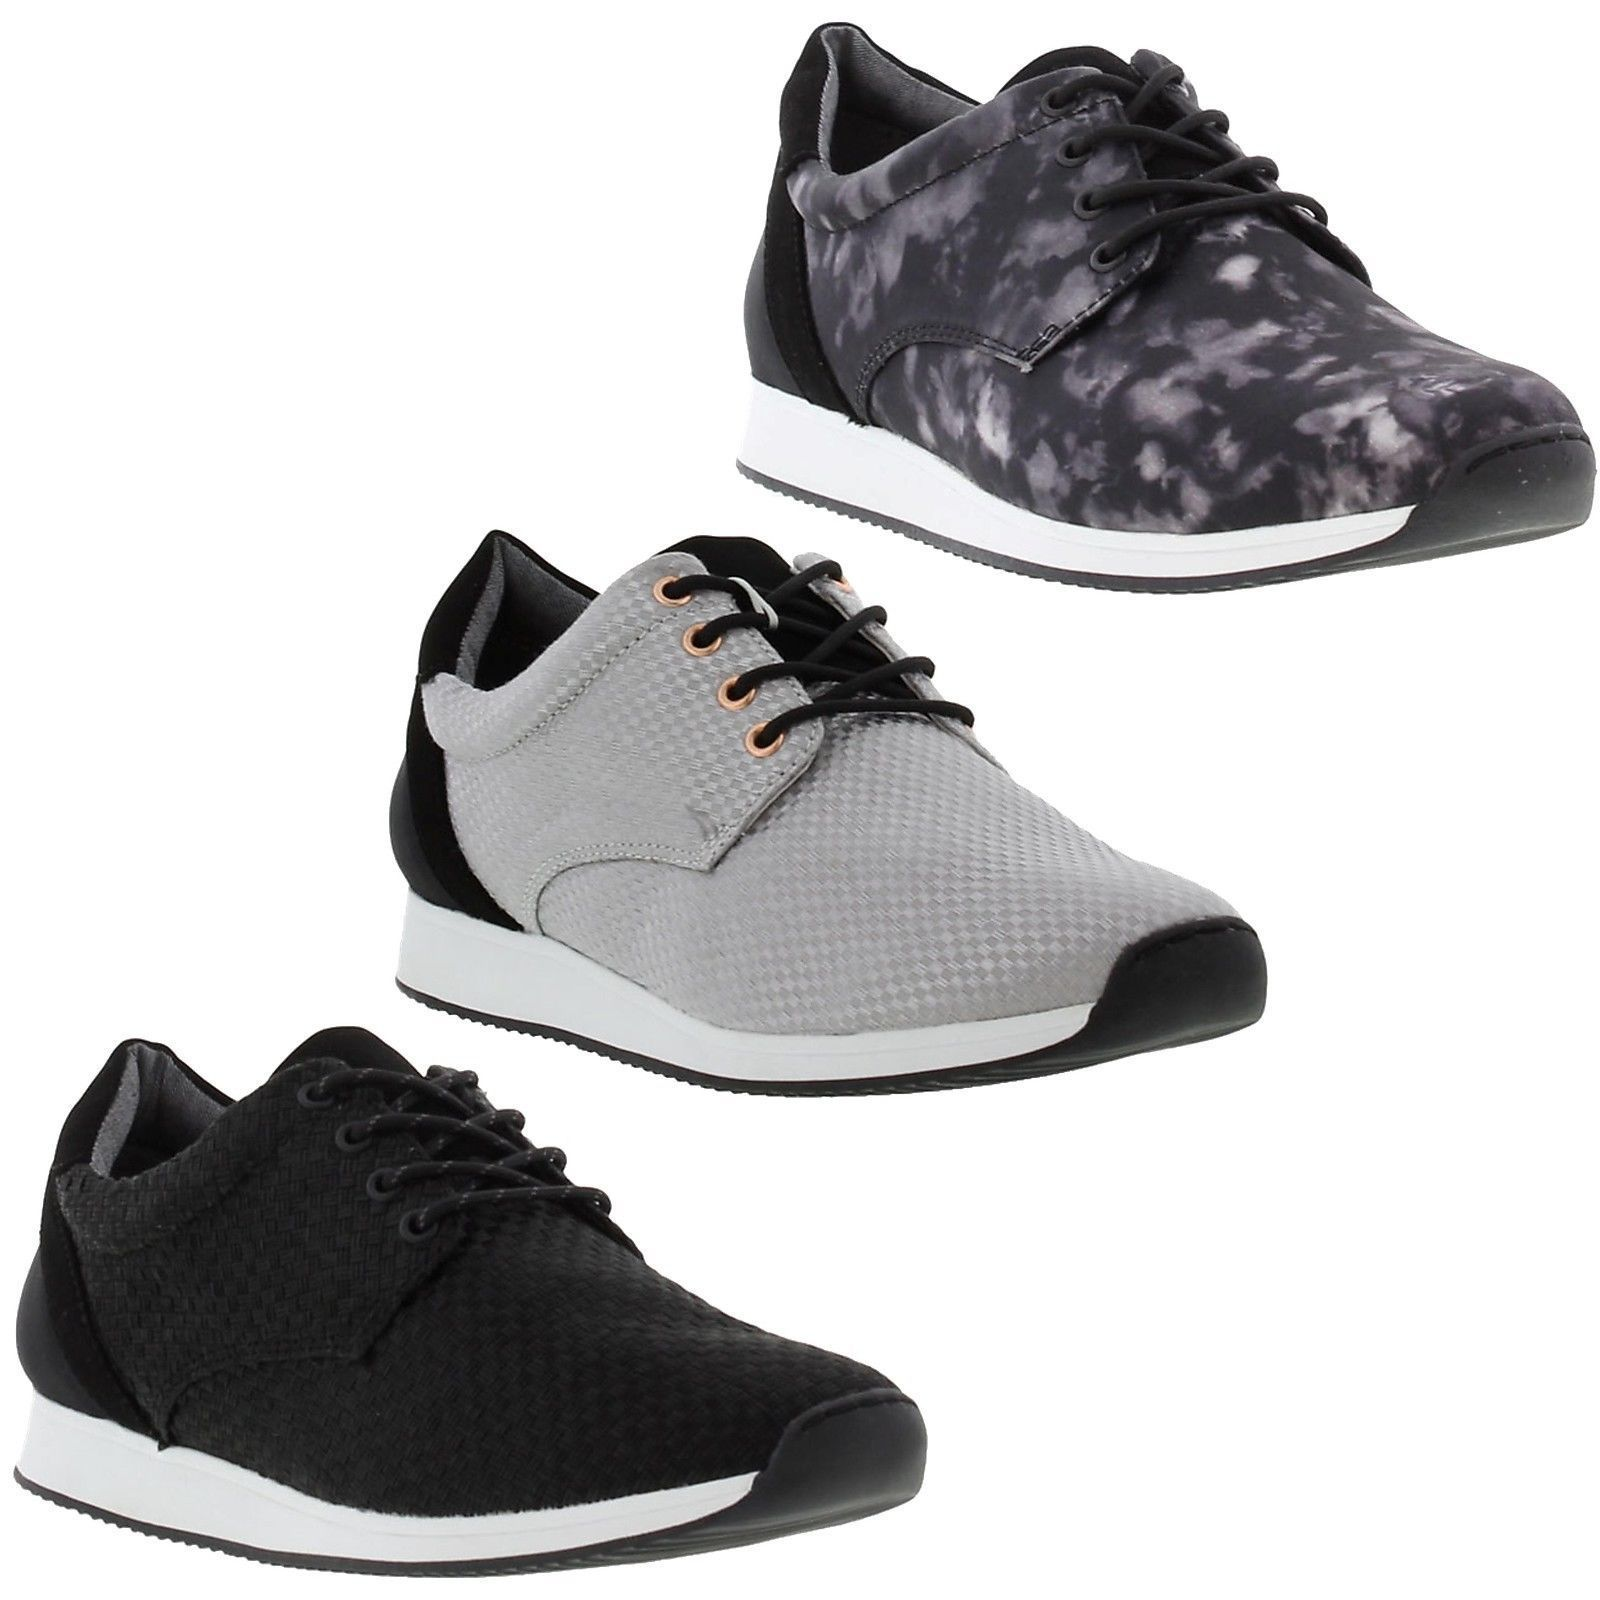 Vagabond Kasai Womens Grey White Sneakers Lace Up Trainers